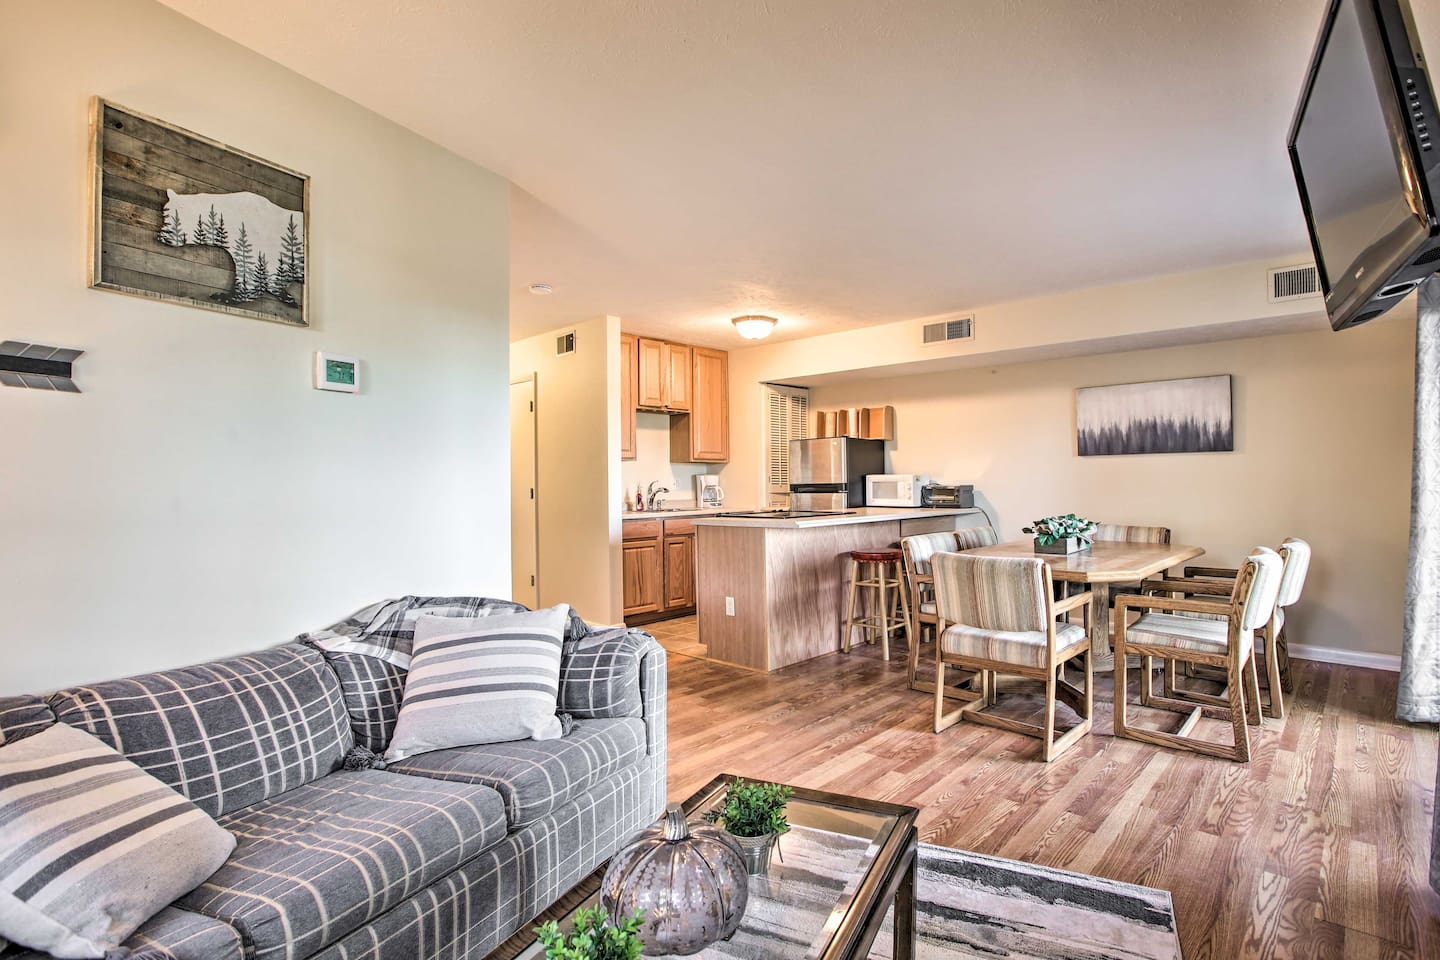 With a sleeper sofa and a queen-sized bed, this vacation rental sleeps 4!